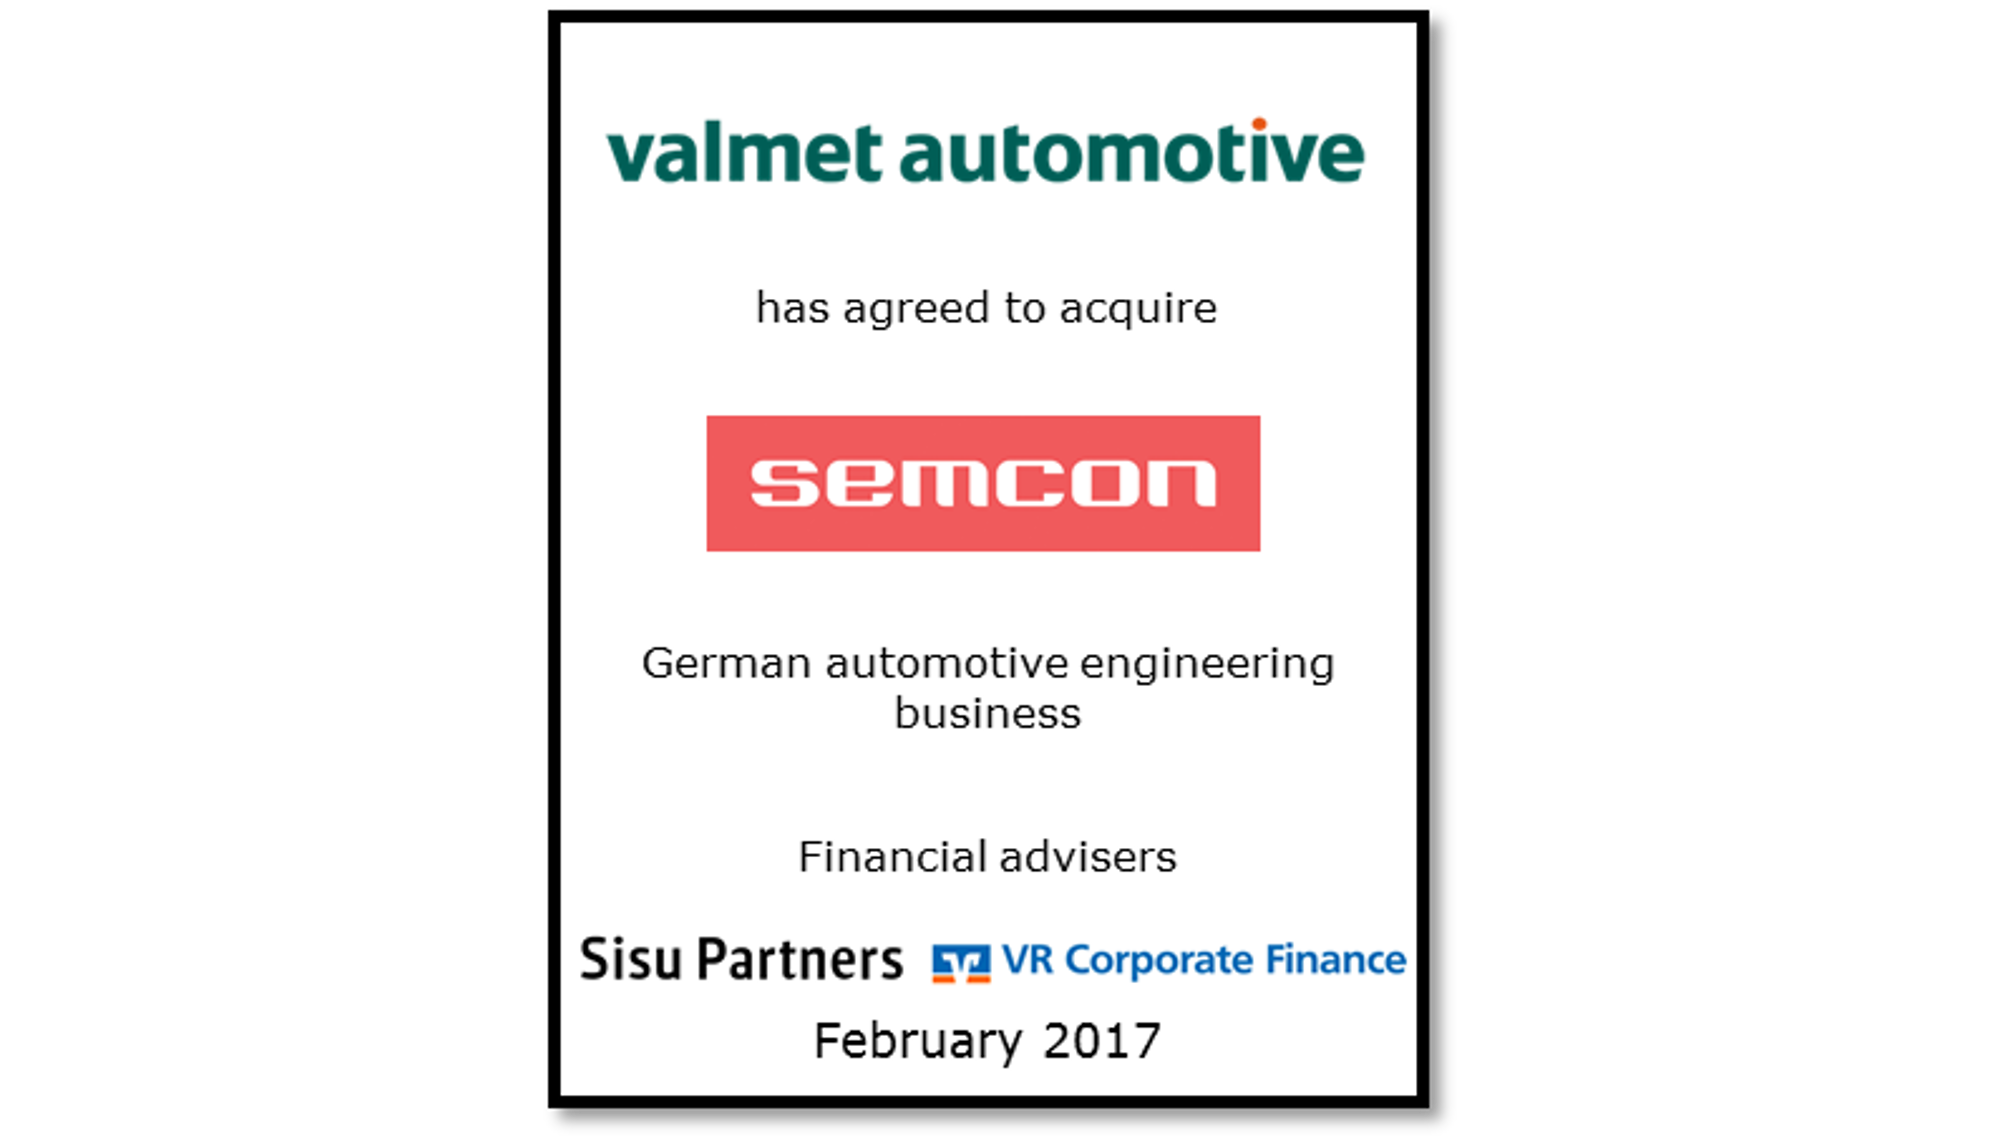 Valmet Automotive Semcon Germany